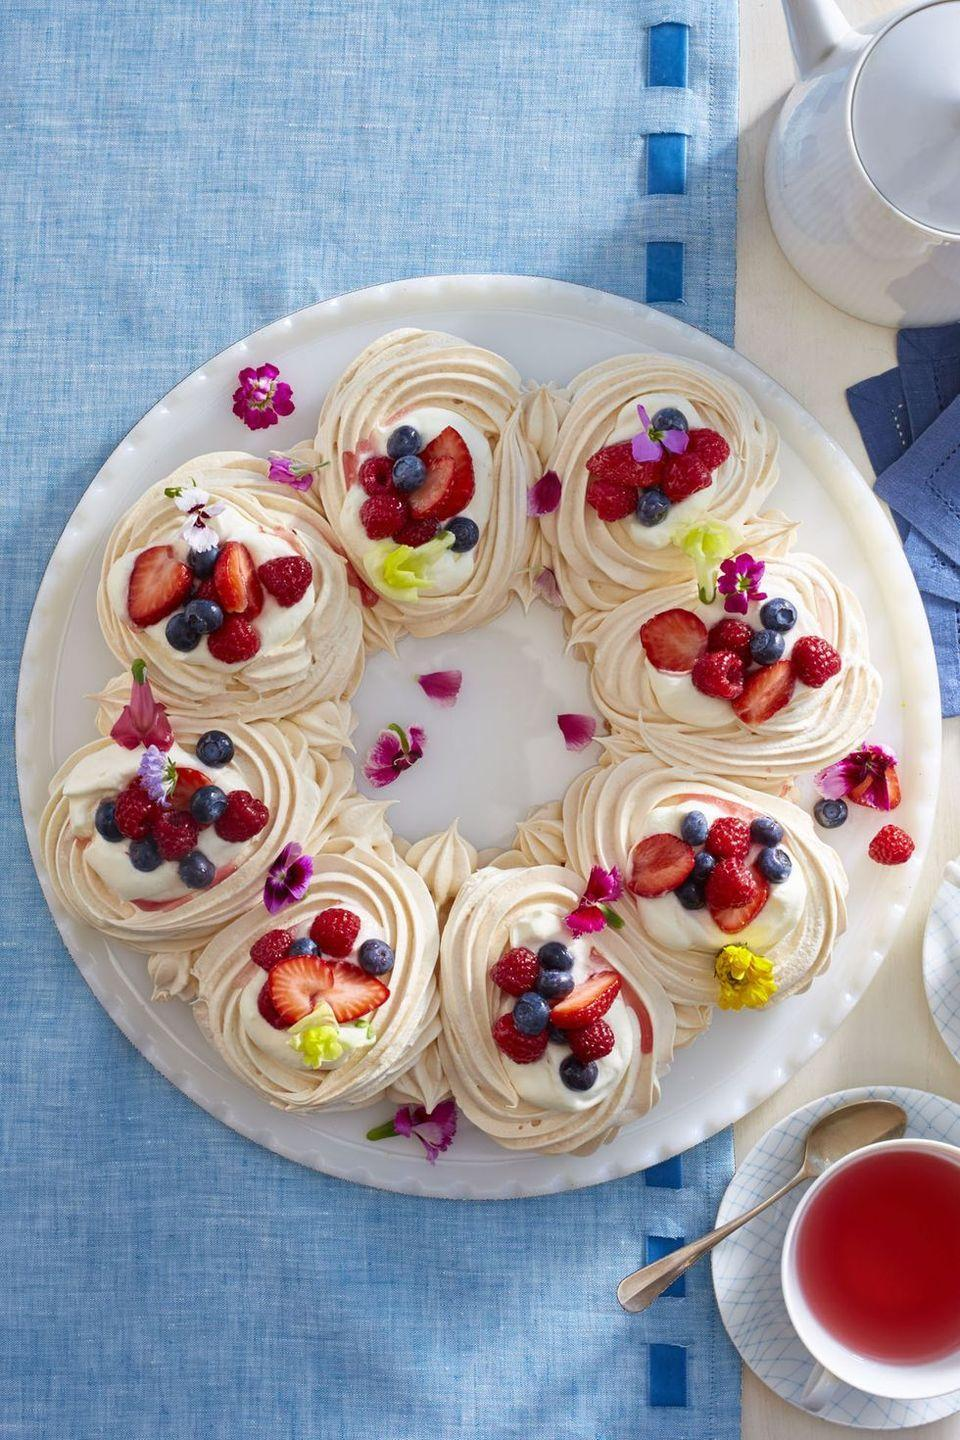 """<p>Top of an easy meringue with any fruit that's in season. Might we suggest strawberries and rhubarb? </p><p><em><a href=""""https://www.womansday.com/food-recipes/food-drinks/recipes/a58133/meringue-wreath-recipe/"""" rel=""""nofollow noopener"""" target=""""_blank"""" data-ylk=""""slk:Get the recipe from Woman's Day »"""" class=""""link rapid-noclick-resp"""">Get the recipe from Woman's Day »</a></em></p>"""